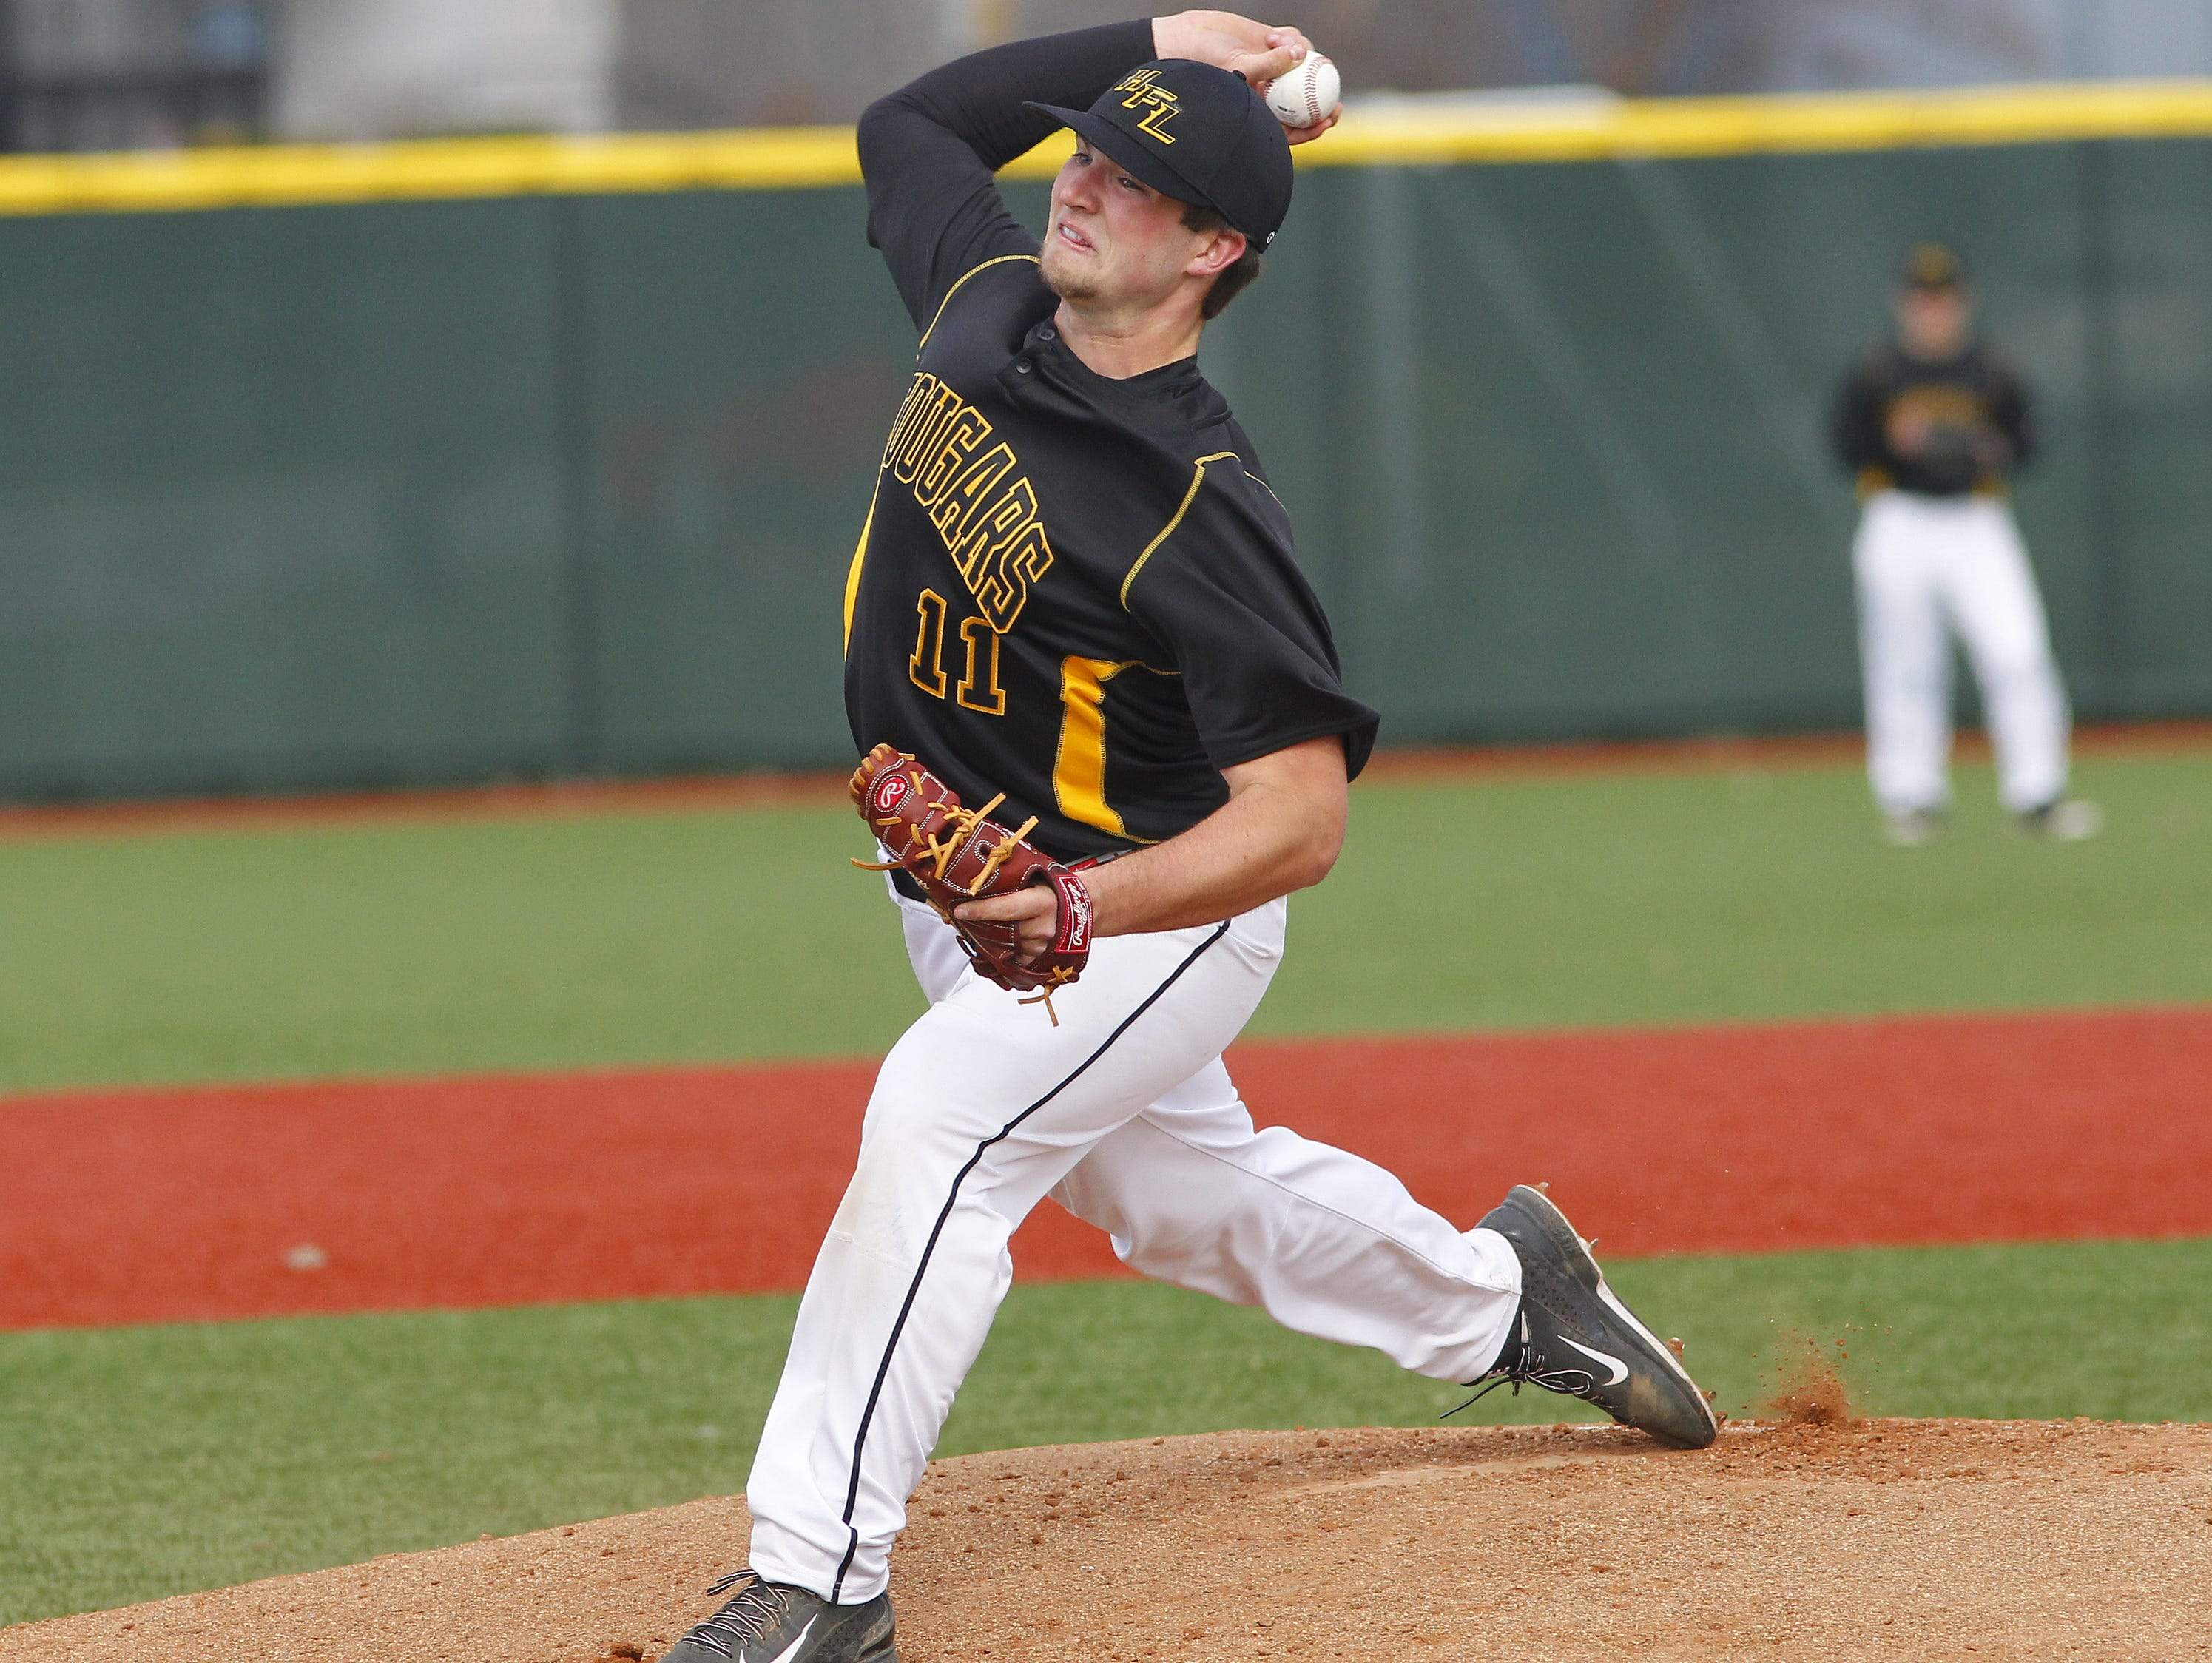 Honeoye Falls-Lima's Andrew Bailey is the 2015 Democrat and Chronicle All-Greater Rochester Player of the Year, based on a vote of coaches in Section V.